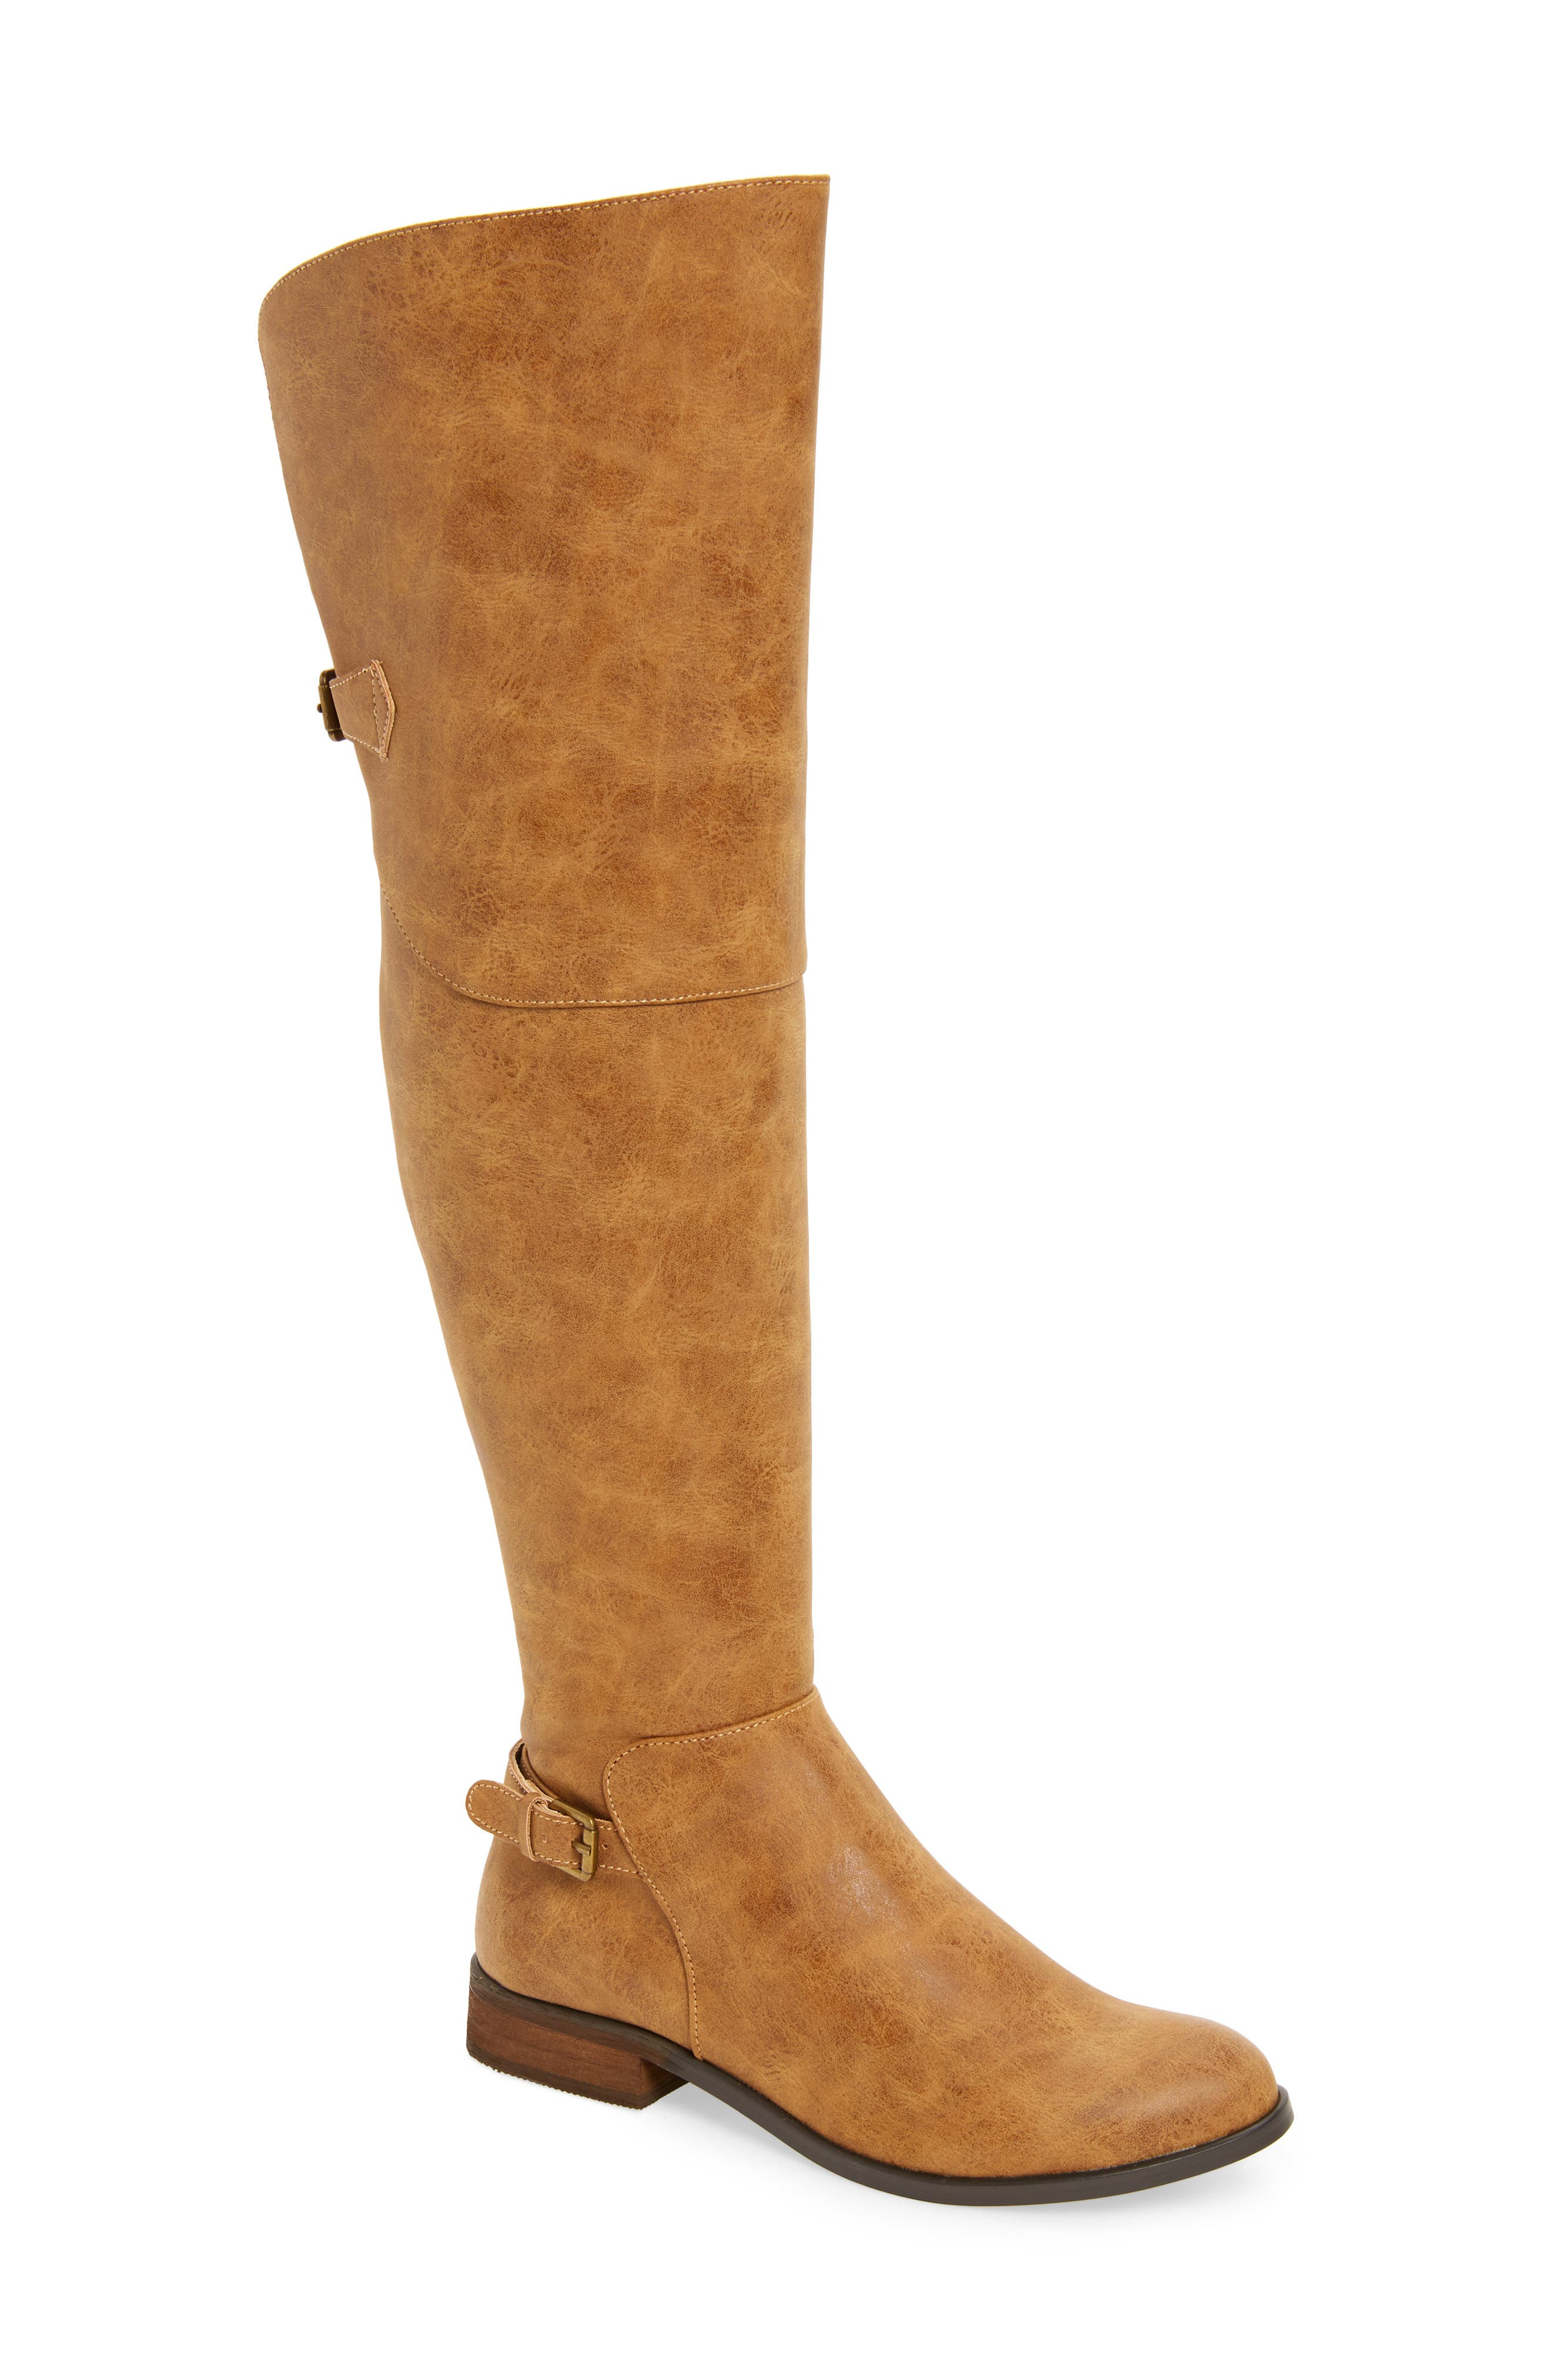 Otto Over the Knee Boot,                         Main,                         color, Tan Faux Leather